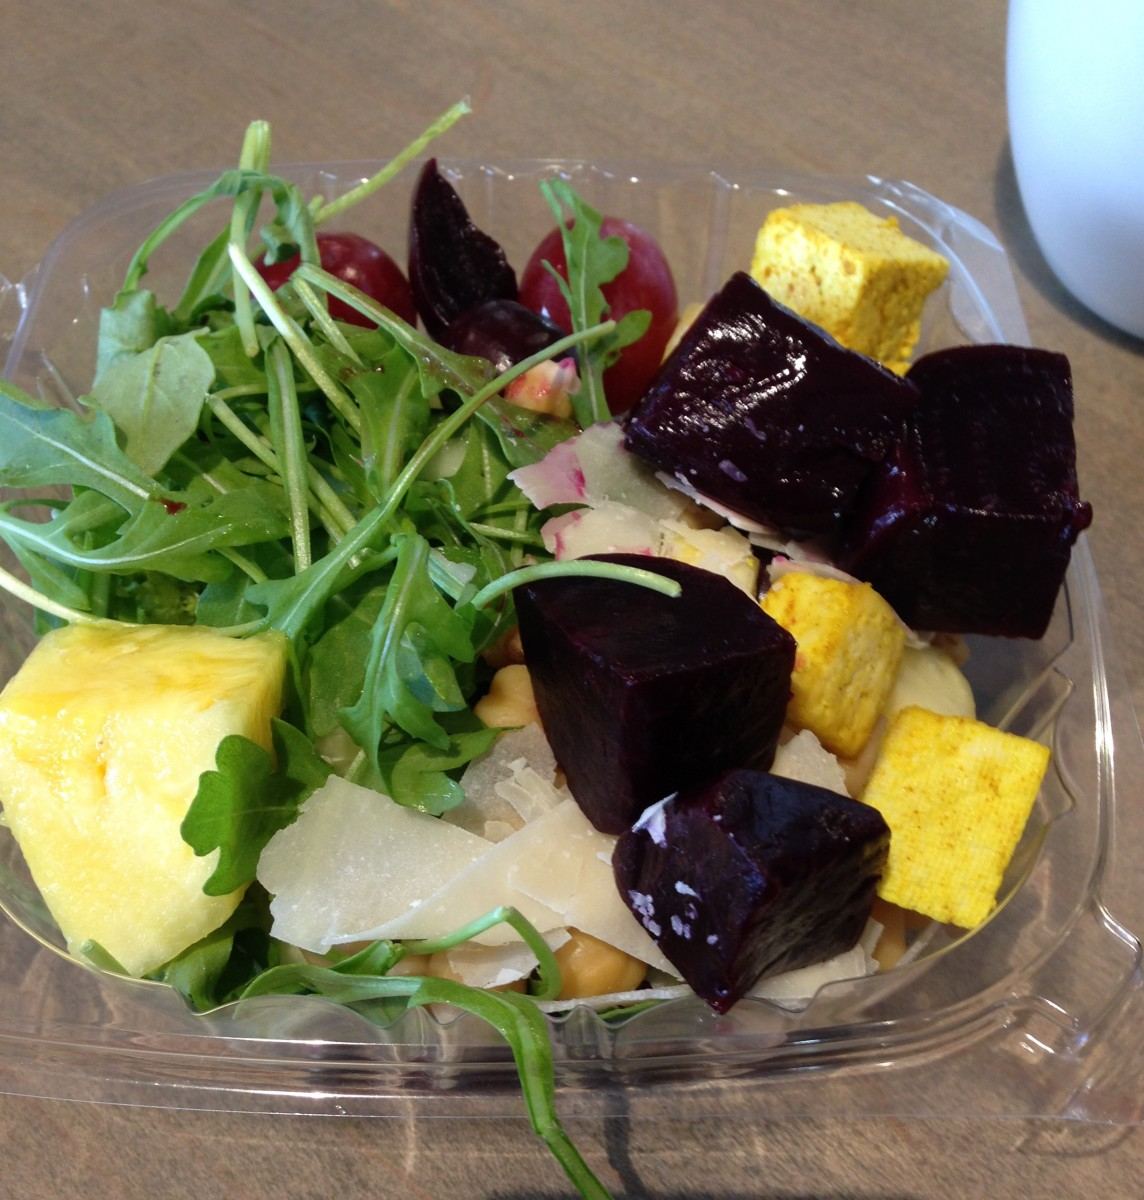 arugula salad with curried tofu, chickpeas, beets, cheese, grapes